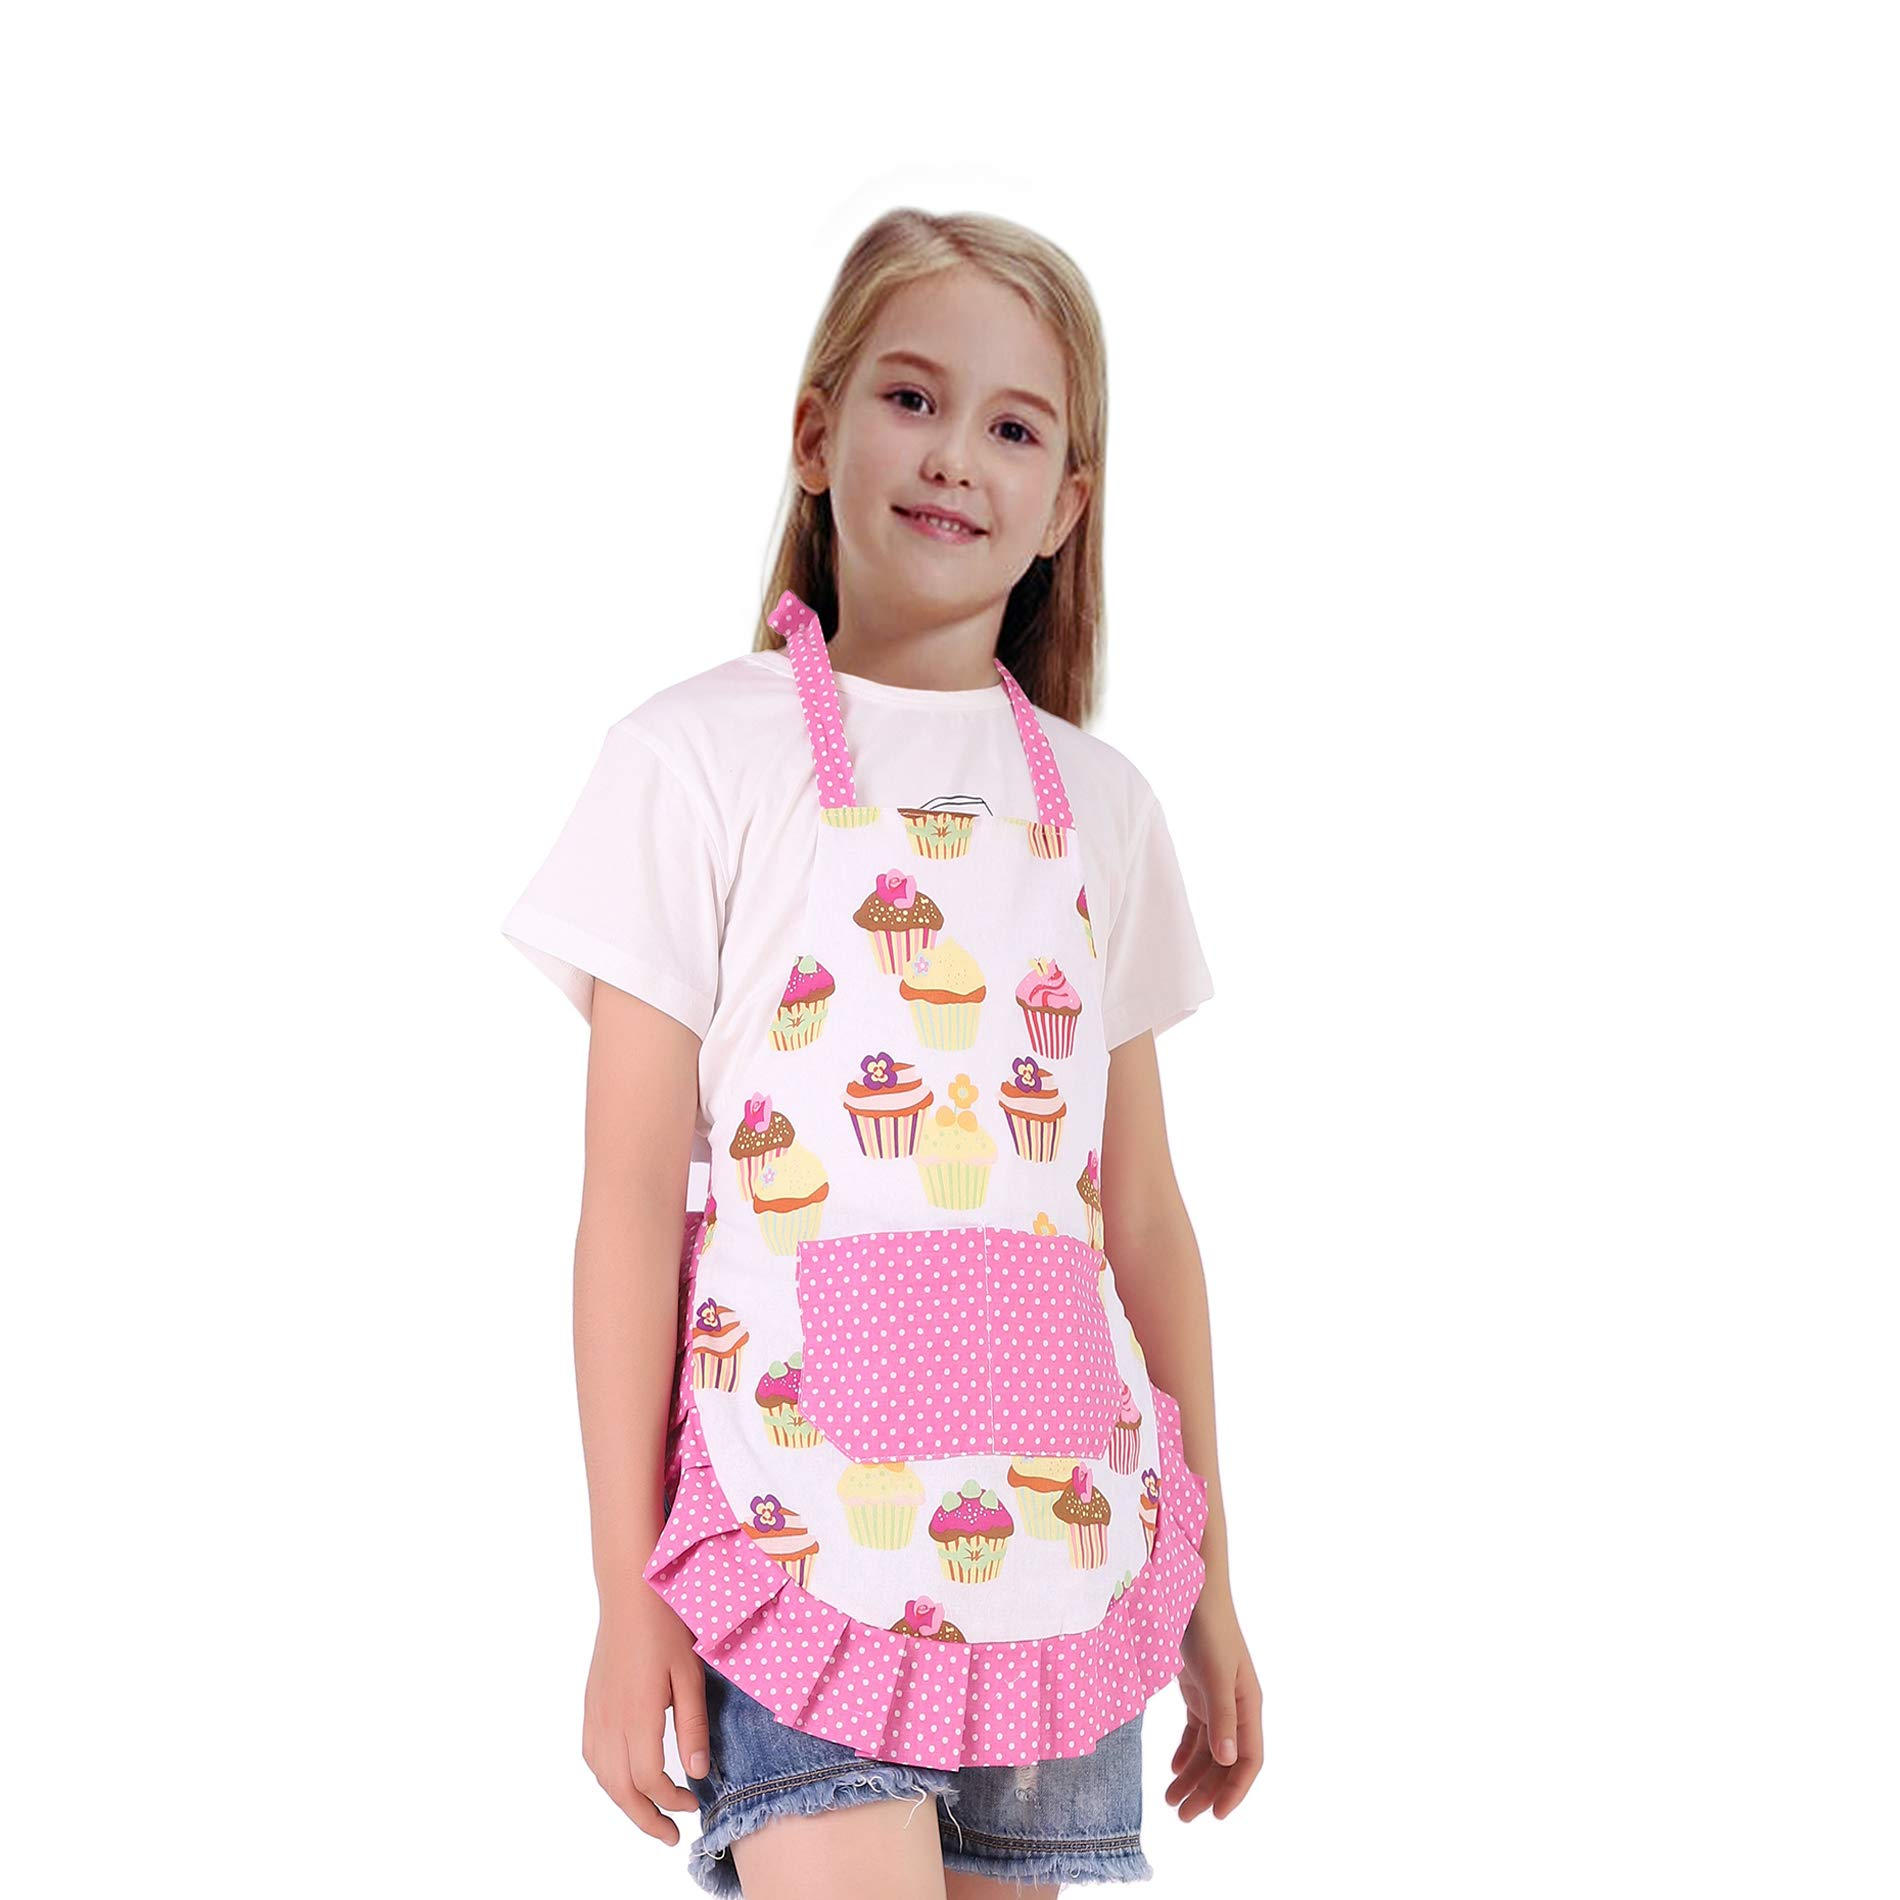 Adorable cupcake apron!